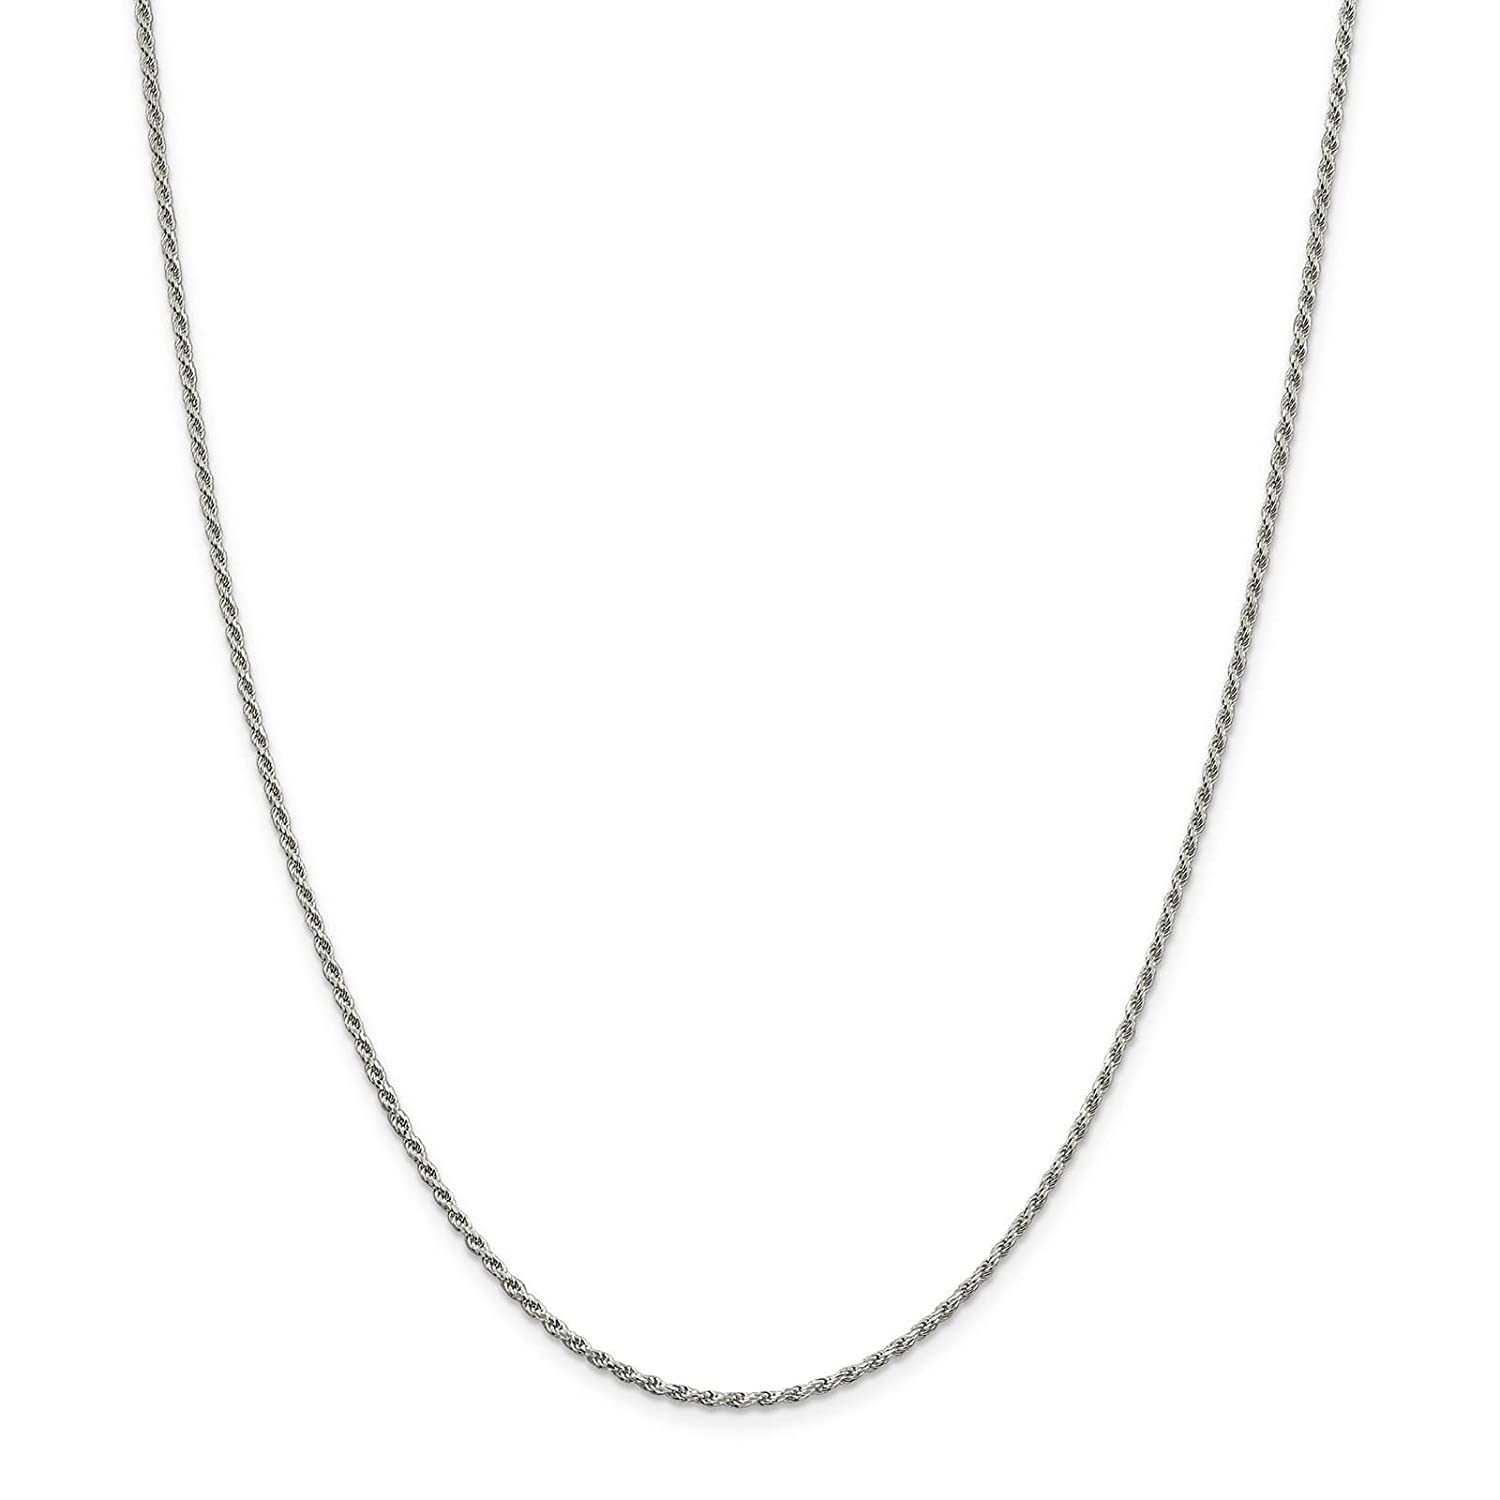 925 Sterling Silver 1.7mm Diamond-cut Rope Chain Necklace 7-24